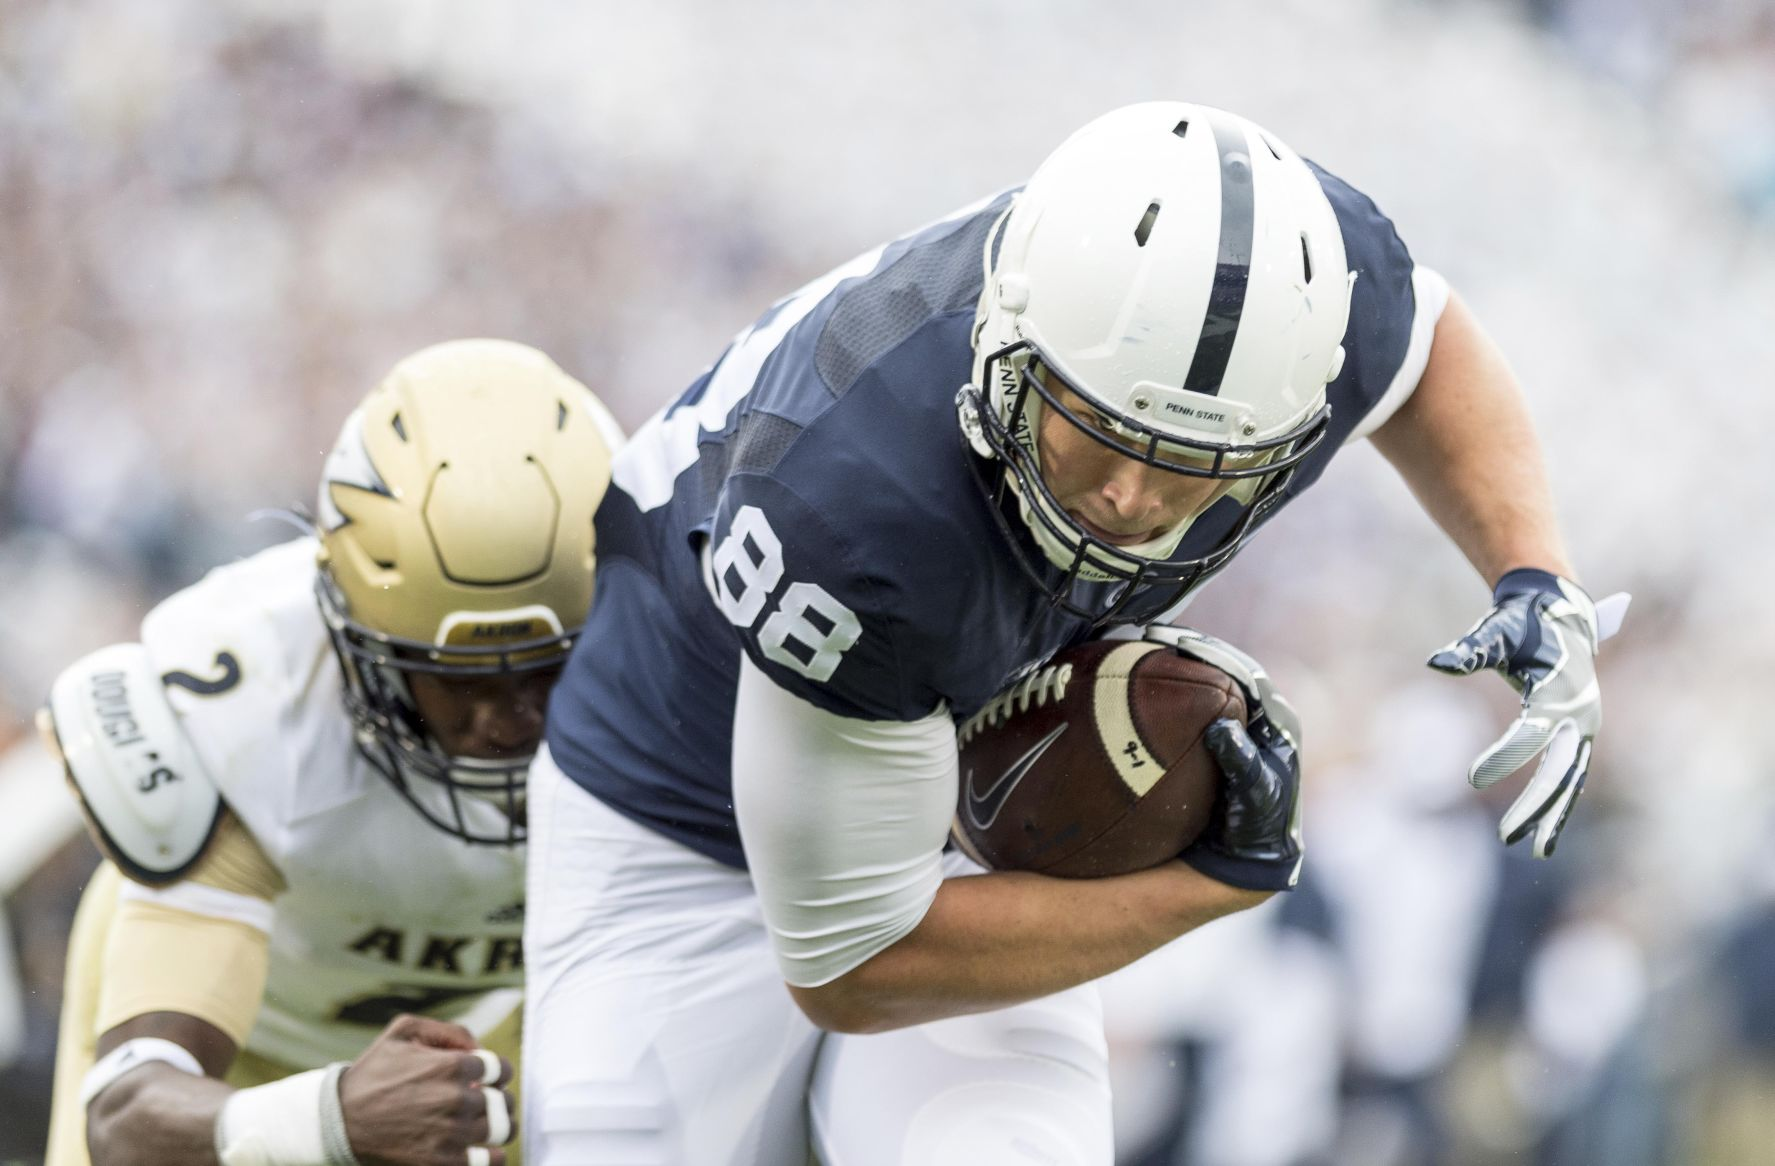 Five takeaways from Penn State Football's 52-0 win over Akron